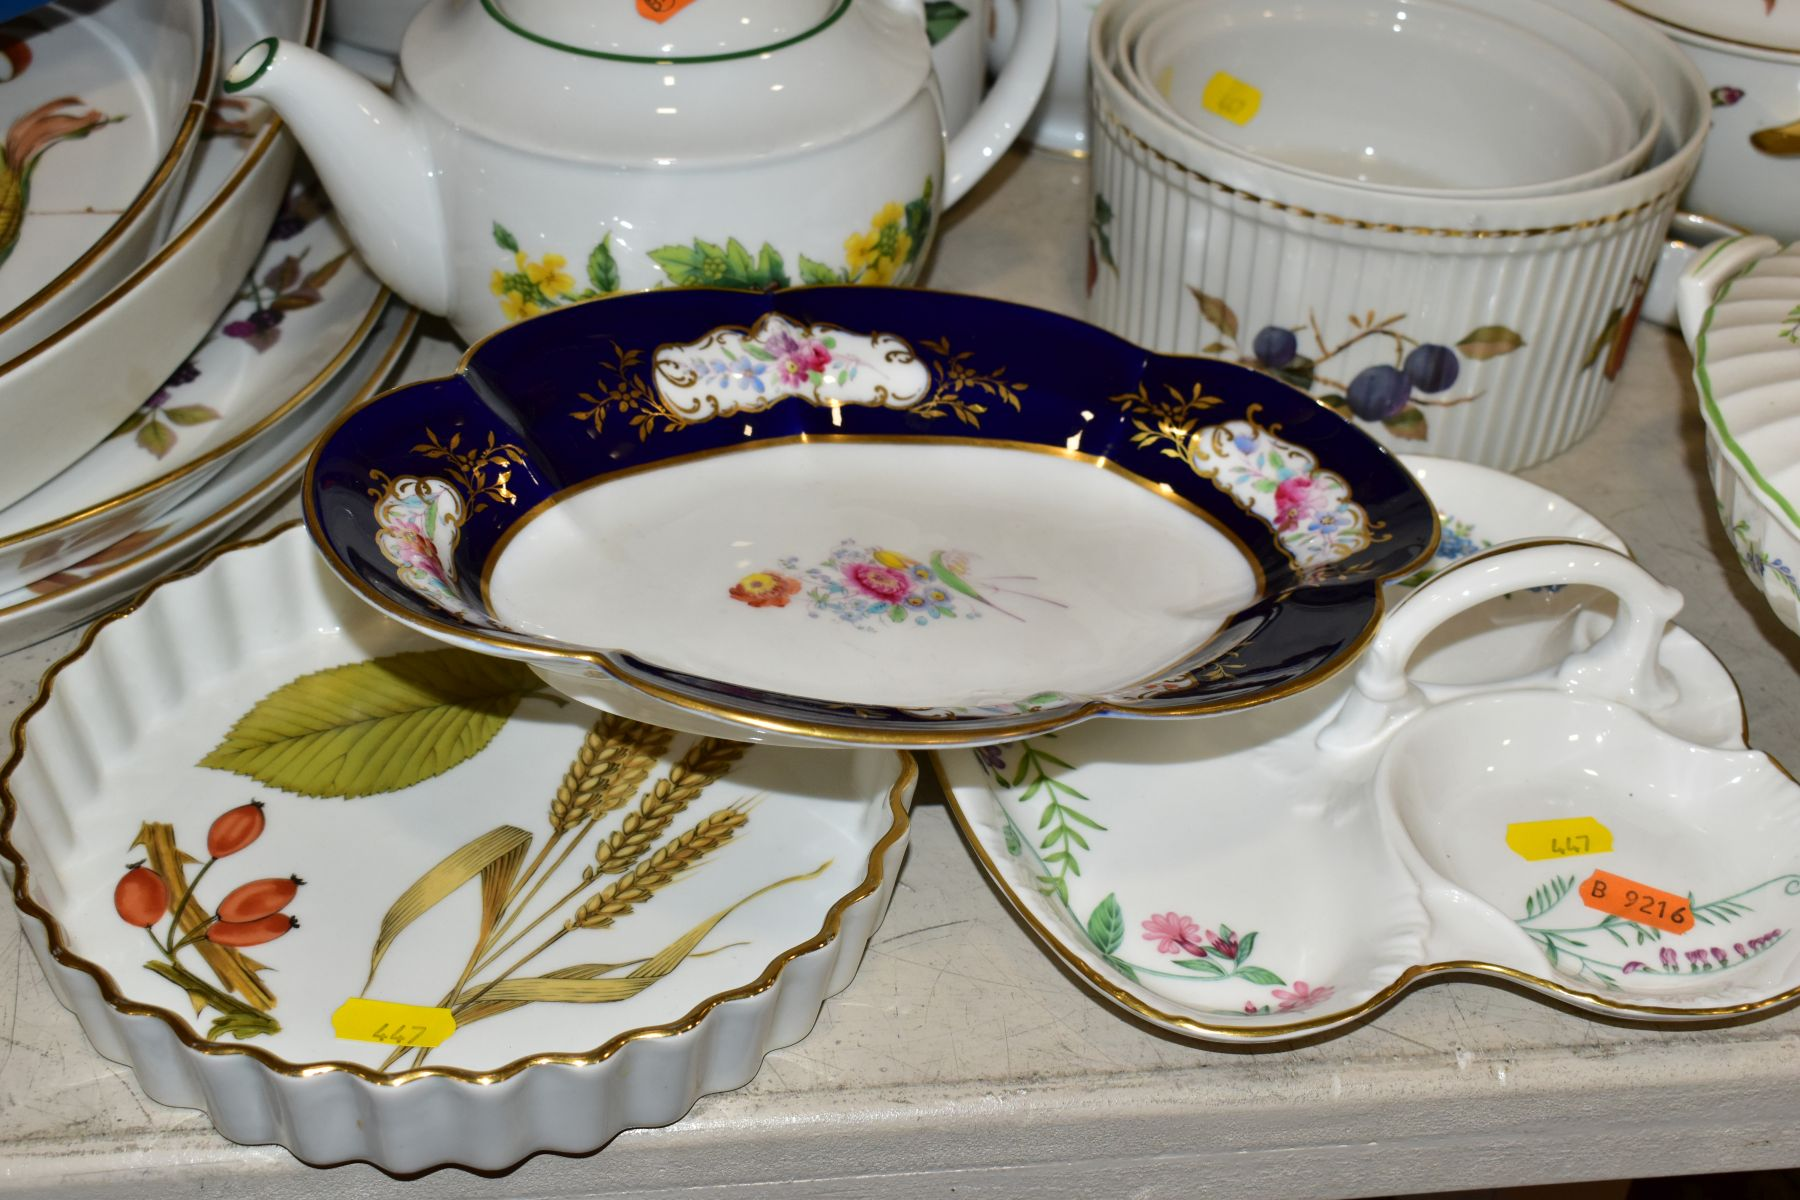 A QUATITY OF ROYAL WORCESTER 'EVESHAM' TABLEWARES, to include tureens, souffle dishes, meat - Image 3 of 9